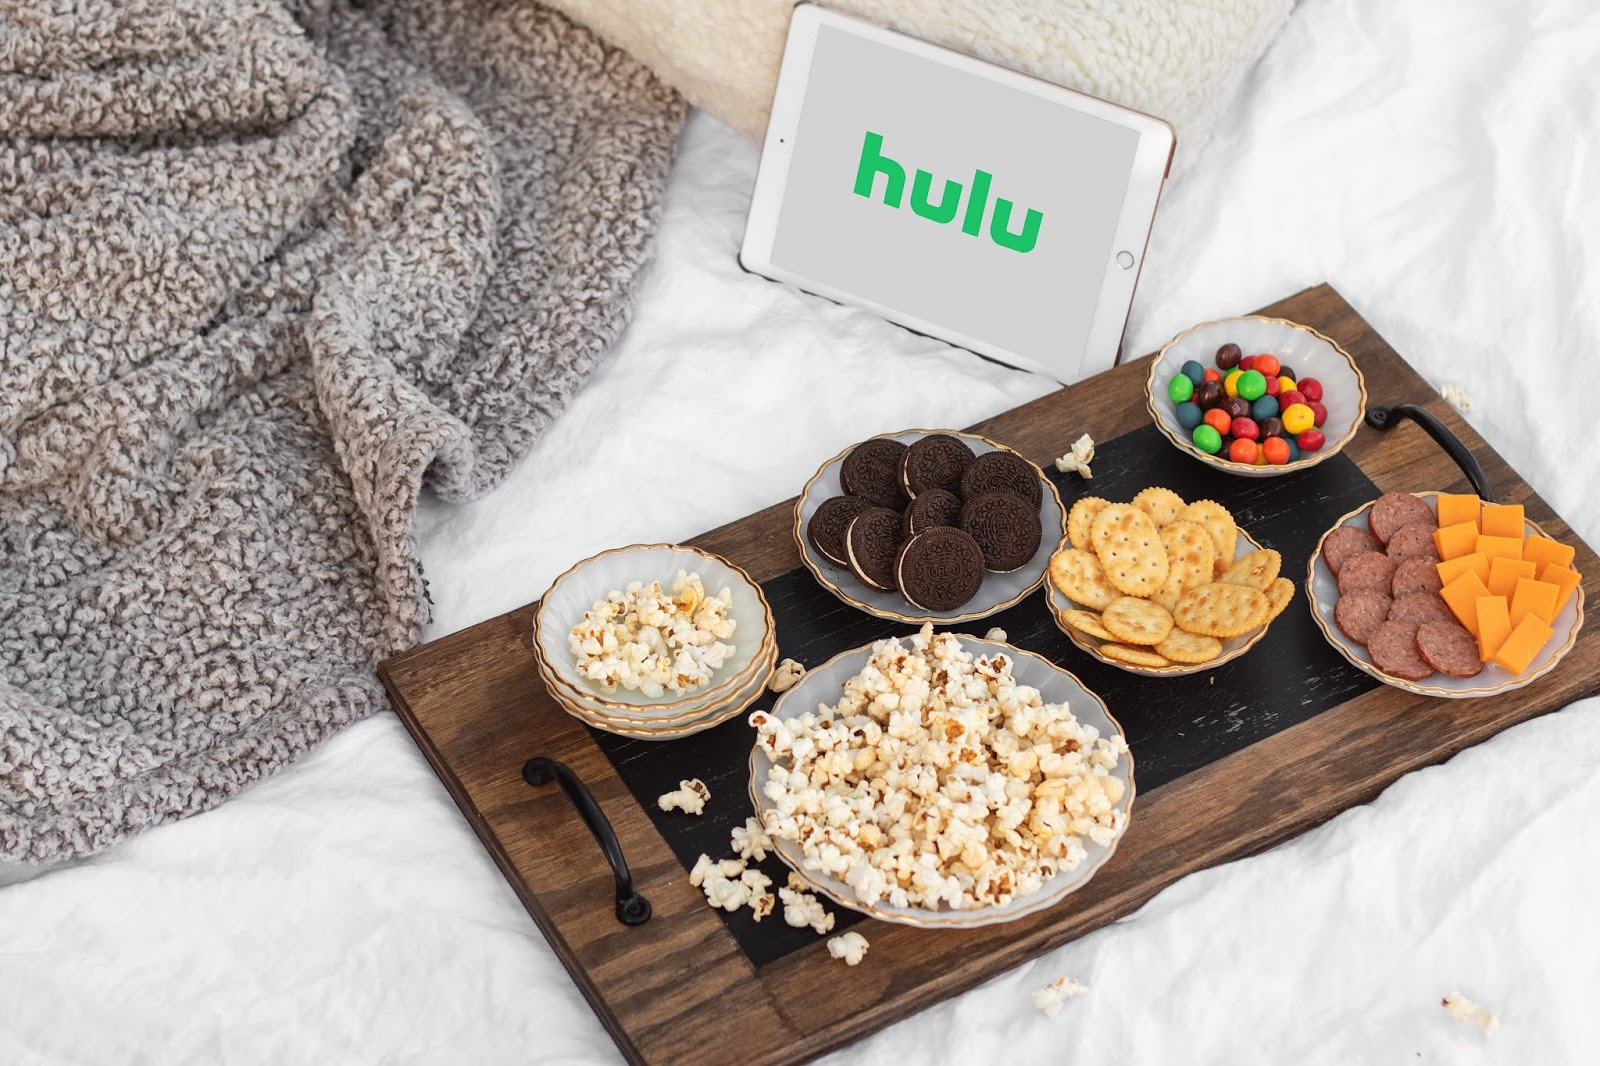 What to watch checklist, what to watch on prime video, what to watch on hulu, what to watch on netflix, best things to stream right now, best shows to watch right now, best movies to watch right now, at home movie night